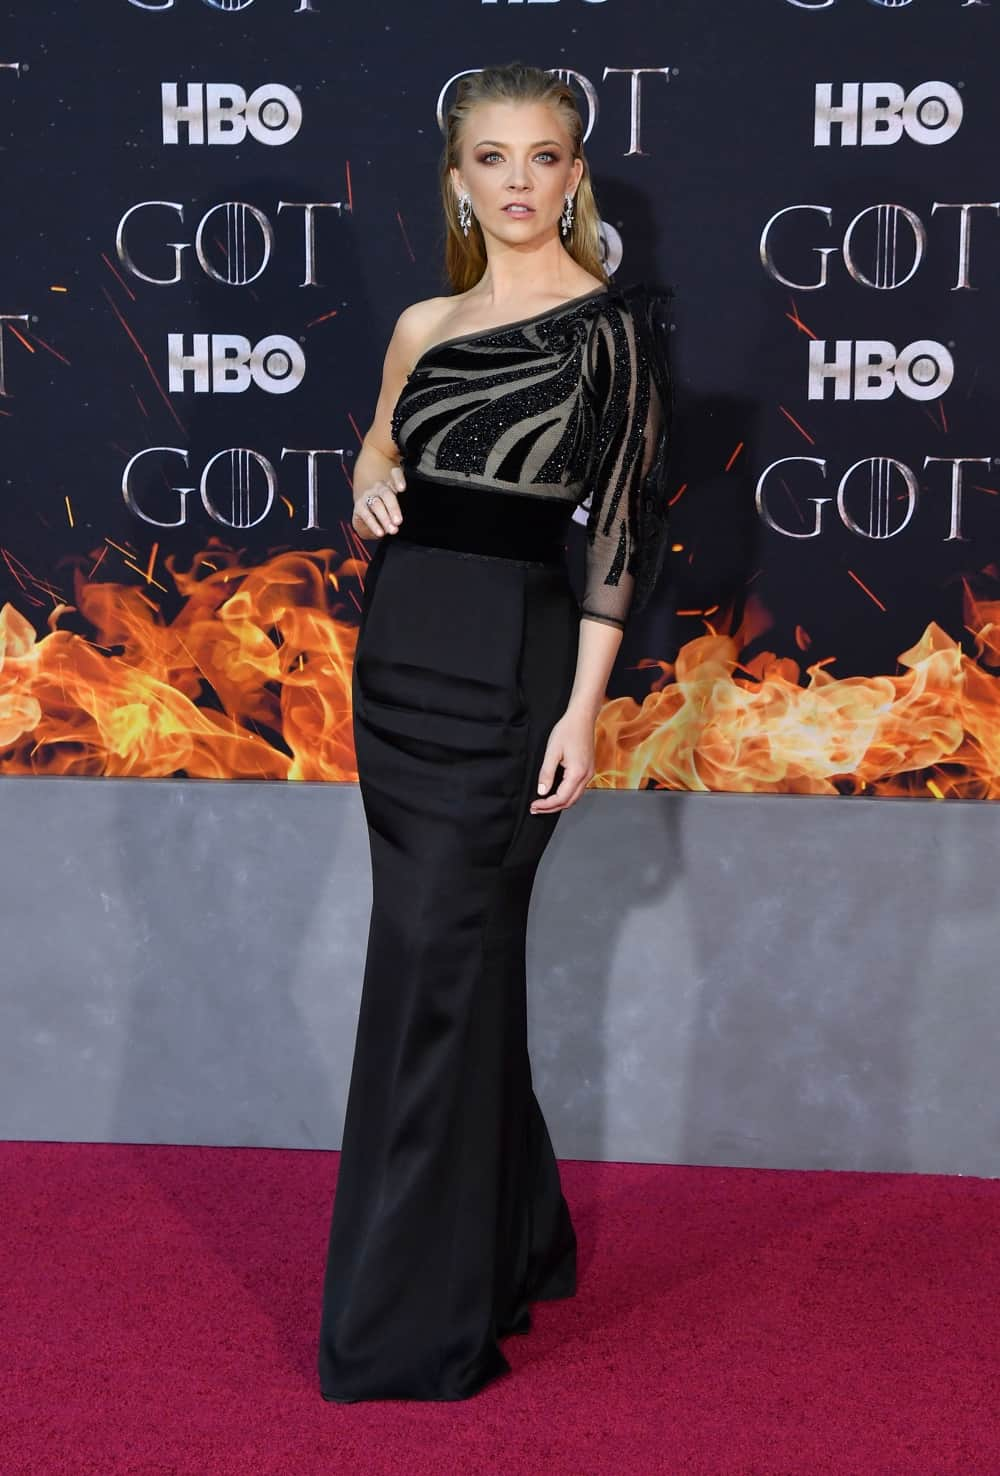 The Cast Of Game Of Thrones Hits The Red Carpet For Season 8